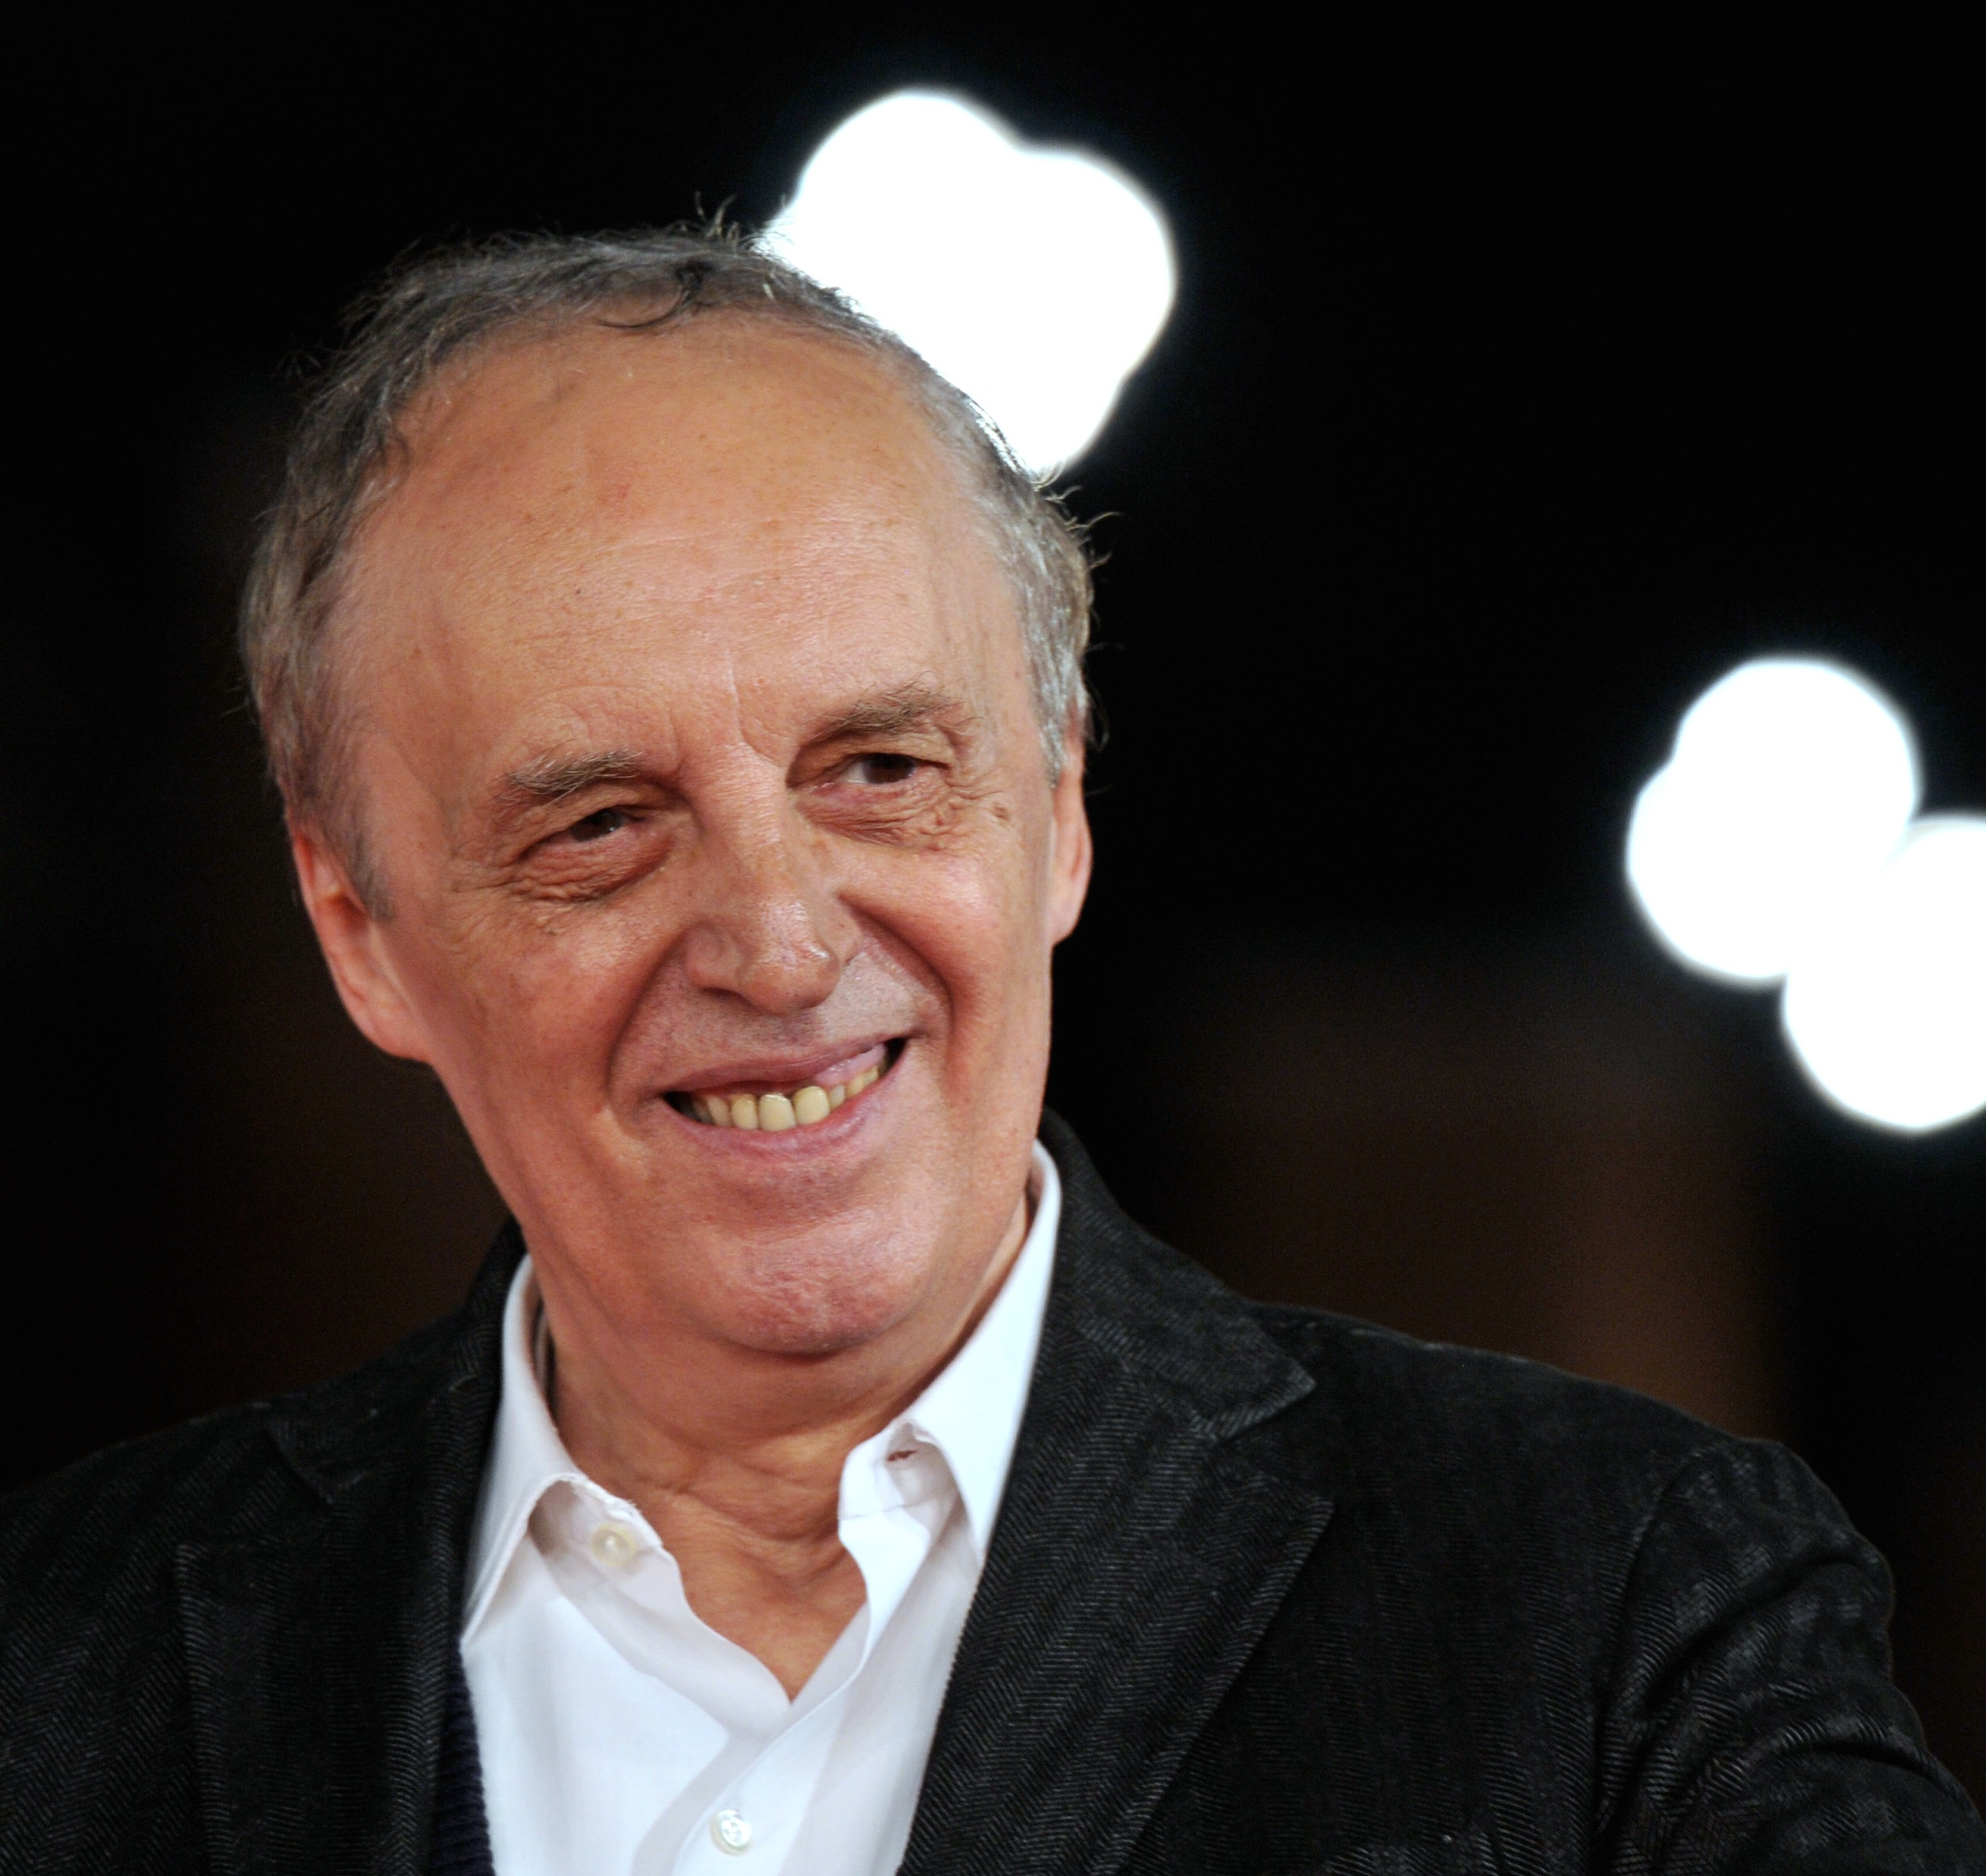 dario argento instagramdario argento the man the myths & the magic, dario argento sandman, dario argento profondo rosso, dario argento trilogy, dario argento film, dario argento box office, dario argento film locations, dario argento sleepless, dario argento best movies, dario argento imdb, dario argento tenebre, dario argento suspiria, dario argento movies, dario argento instagram, dario argento phenomena soundtrack, dario argento top movies, dario argento facebook